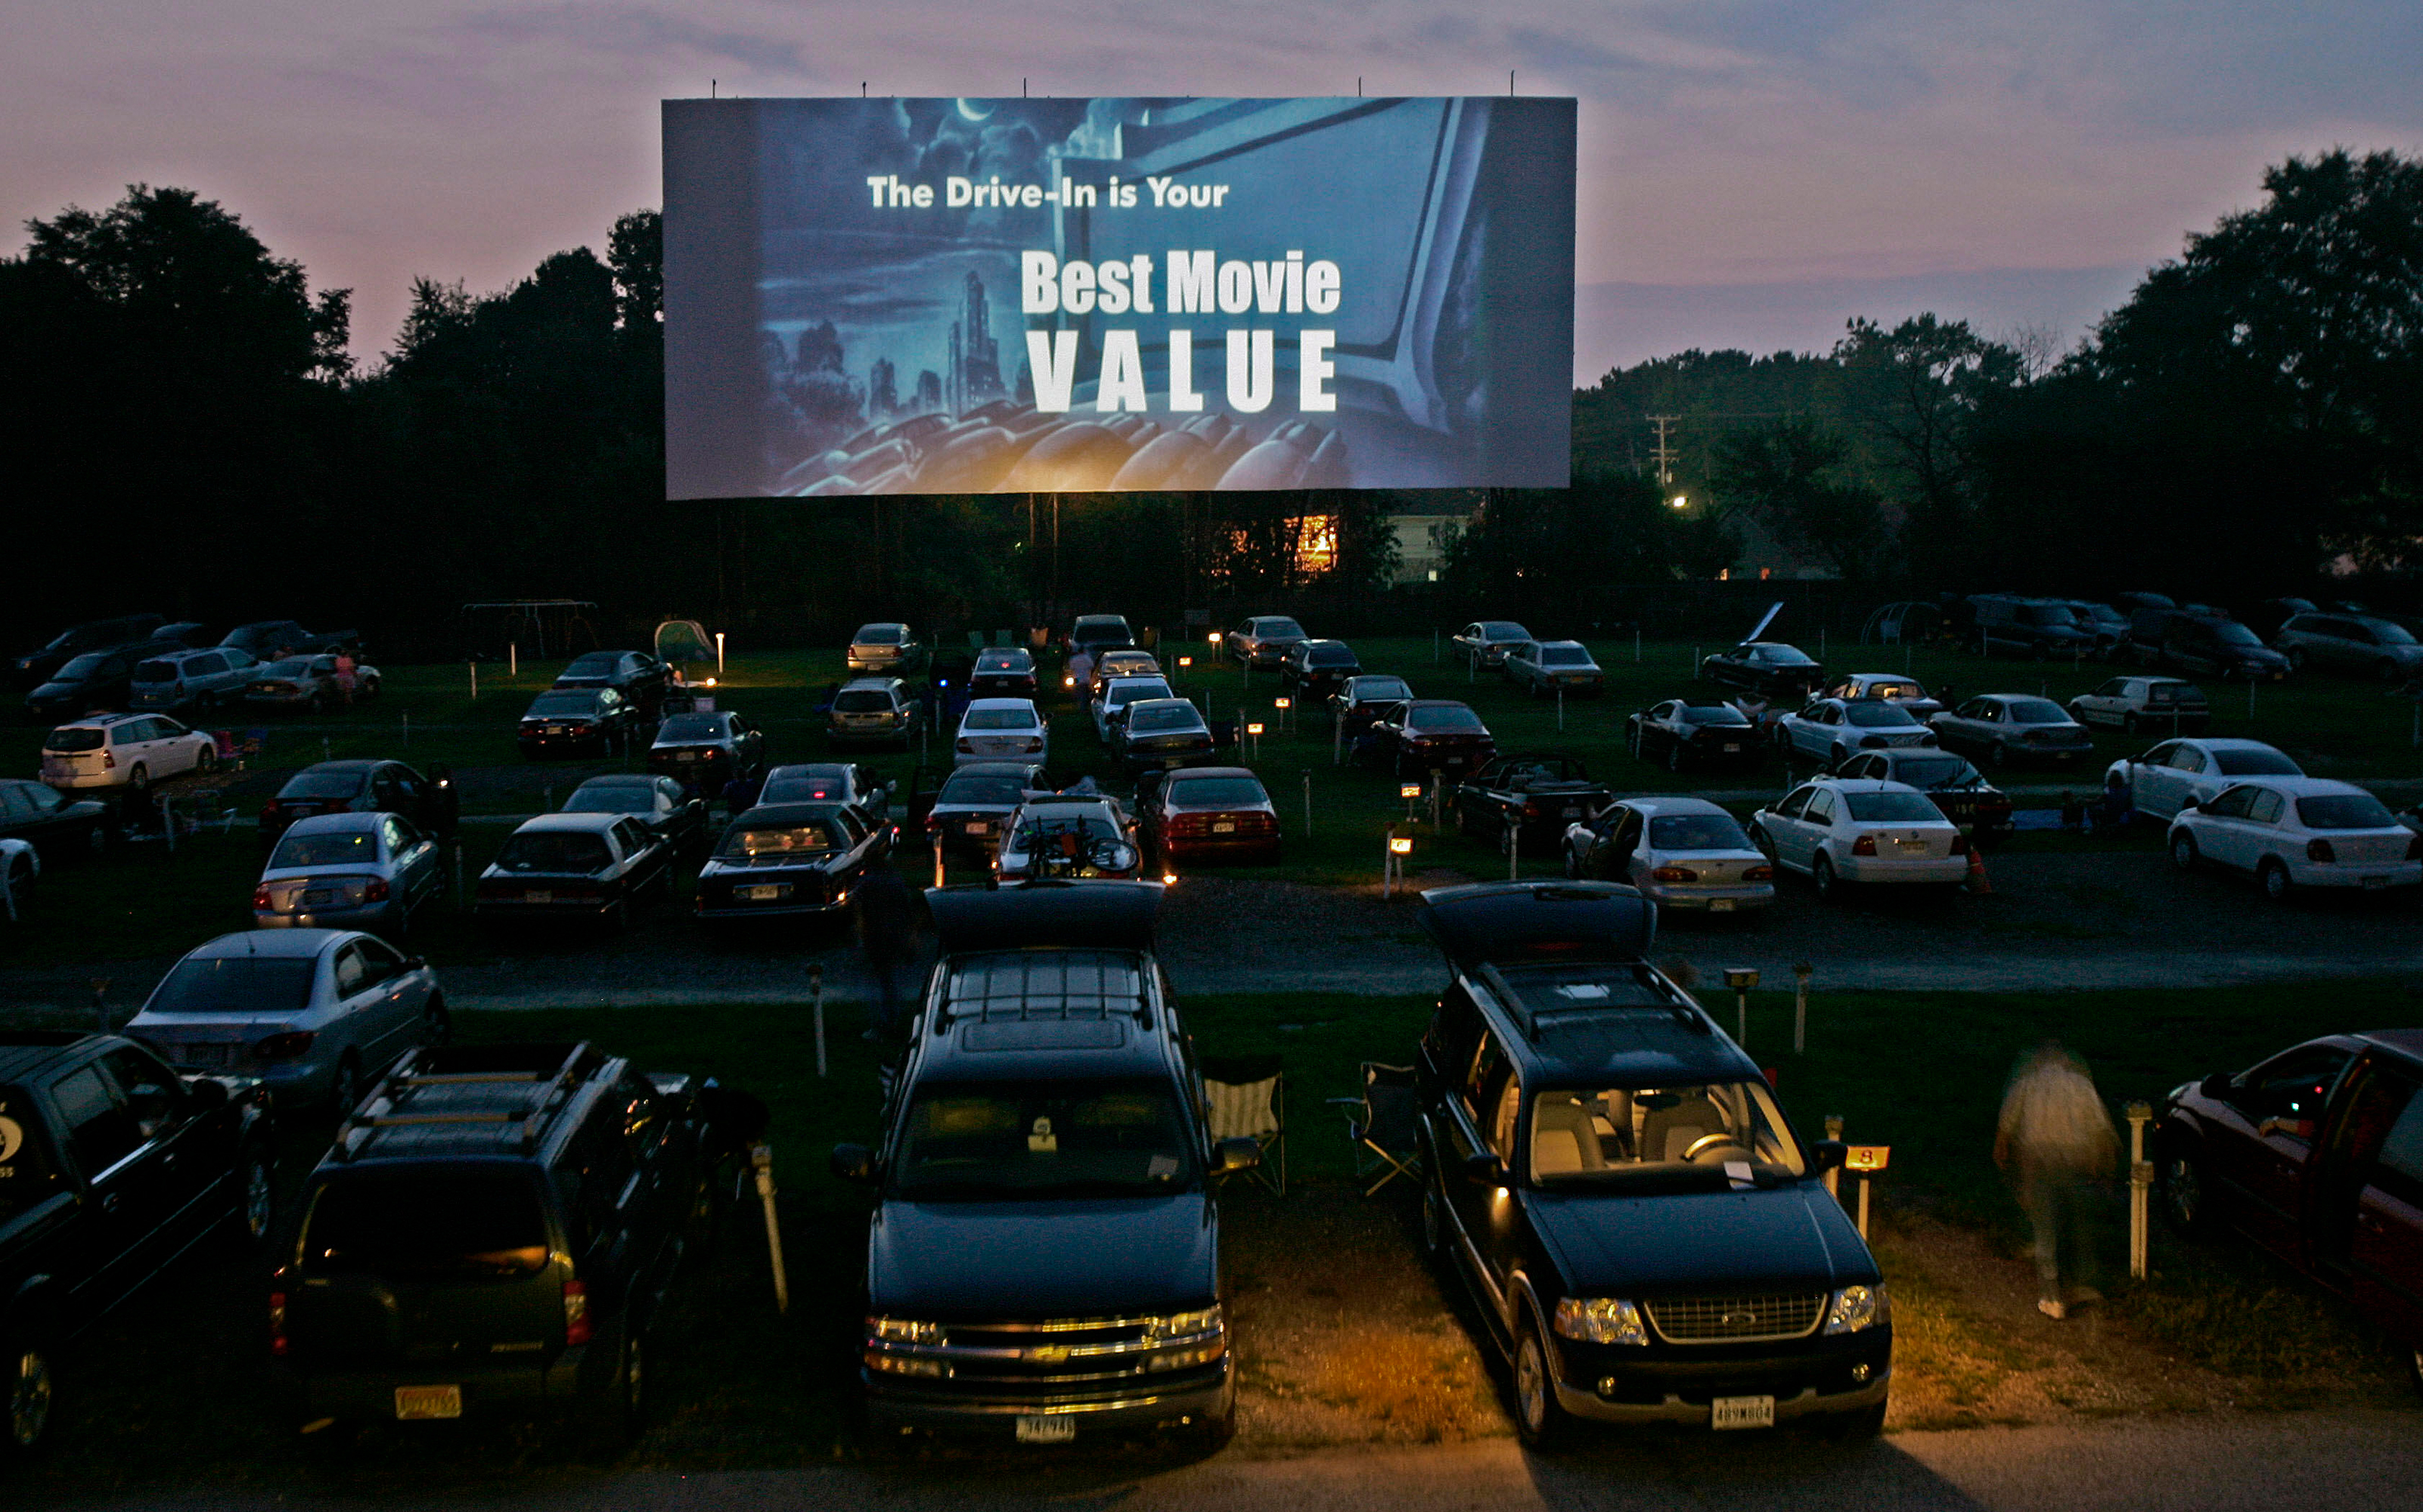 At Bengie's Drive-In, you'll watch the latest movies on the largest outdoor screen in America—it's a whopping 52 feet high and more than 120 feet wide. Near Baltimore, it first opened in 1956, and they still provide families access to triple features on weekends for one flat price. In between each movie, they also screen classic cartoons and vintage trailers.